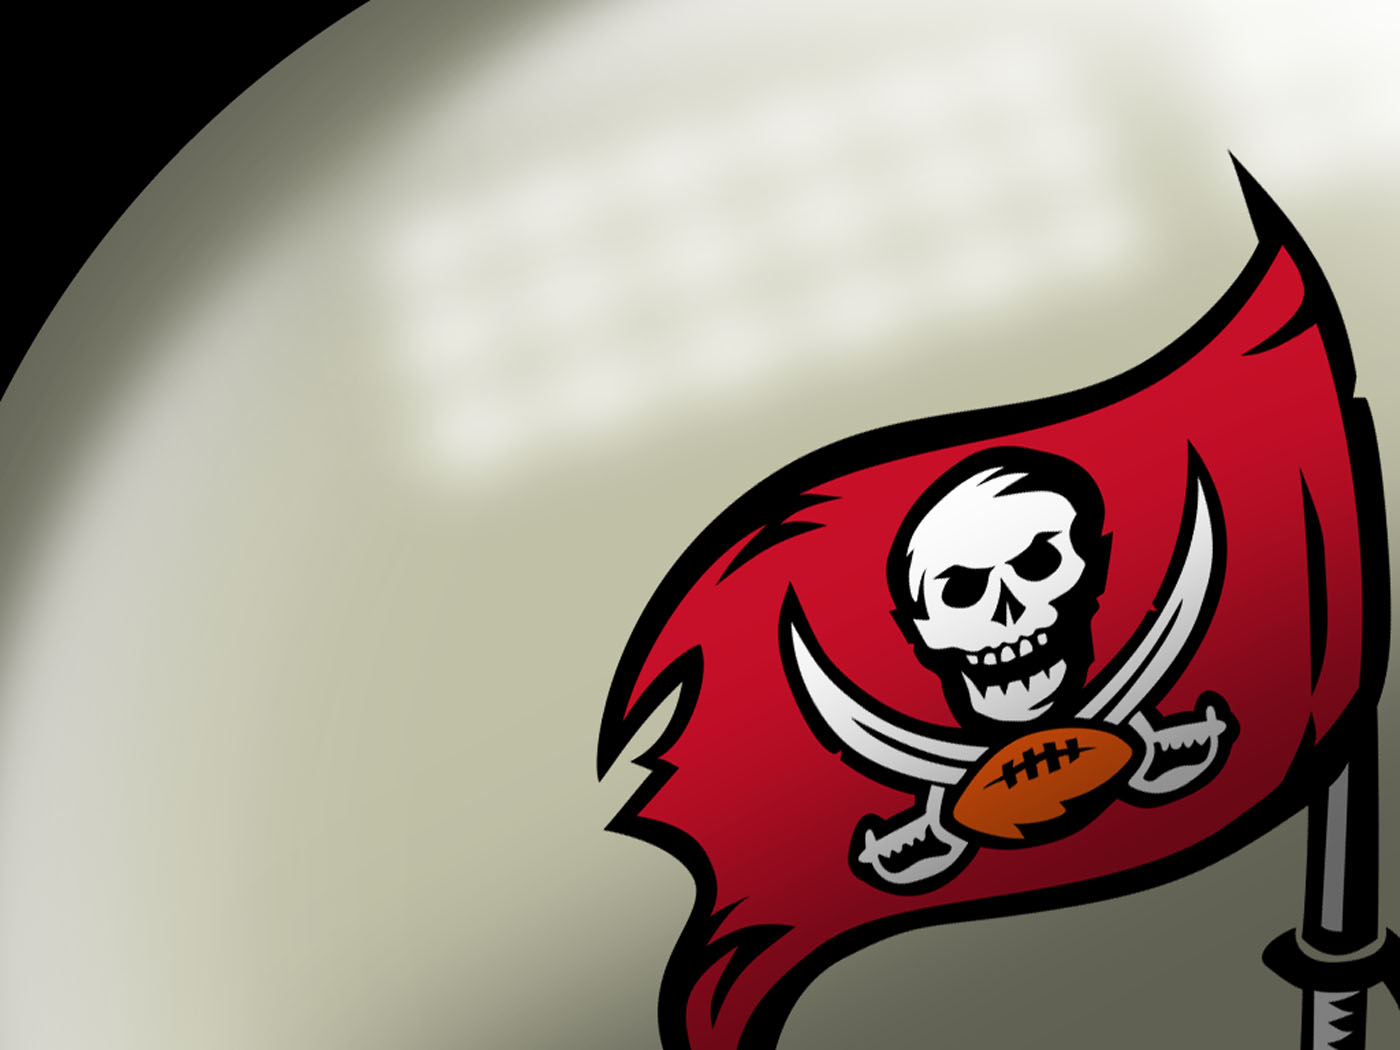 Buccaneers Wallpaper Tampa Bay 1400x1050